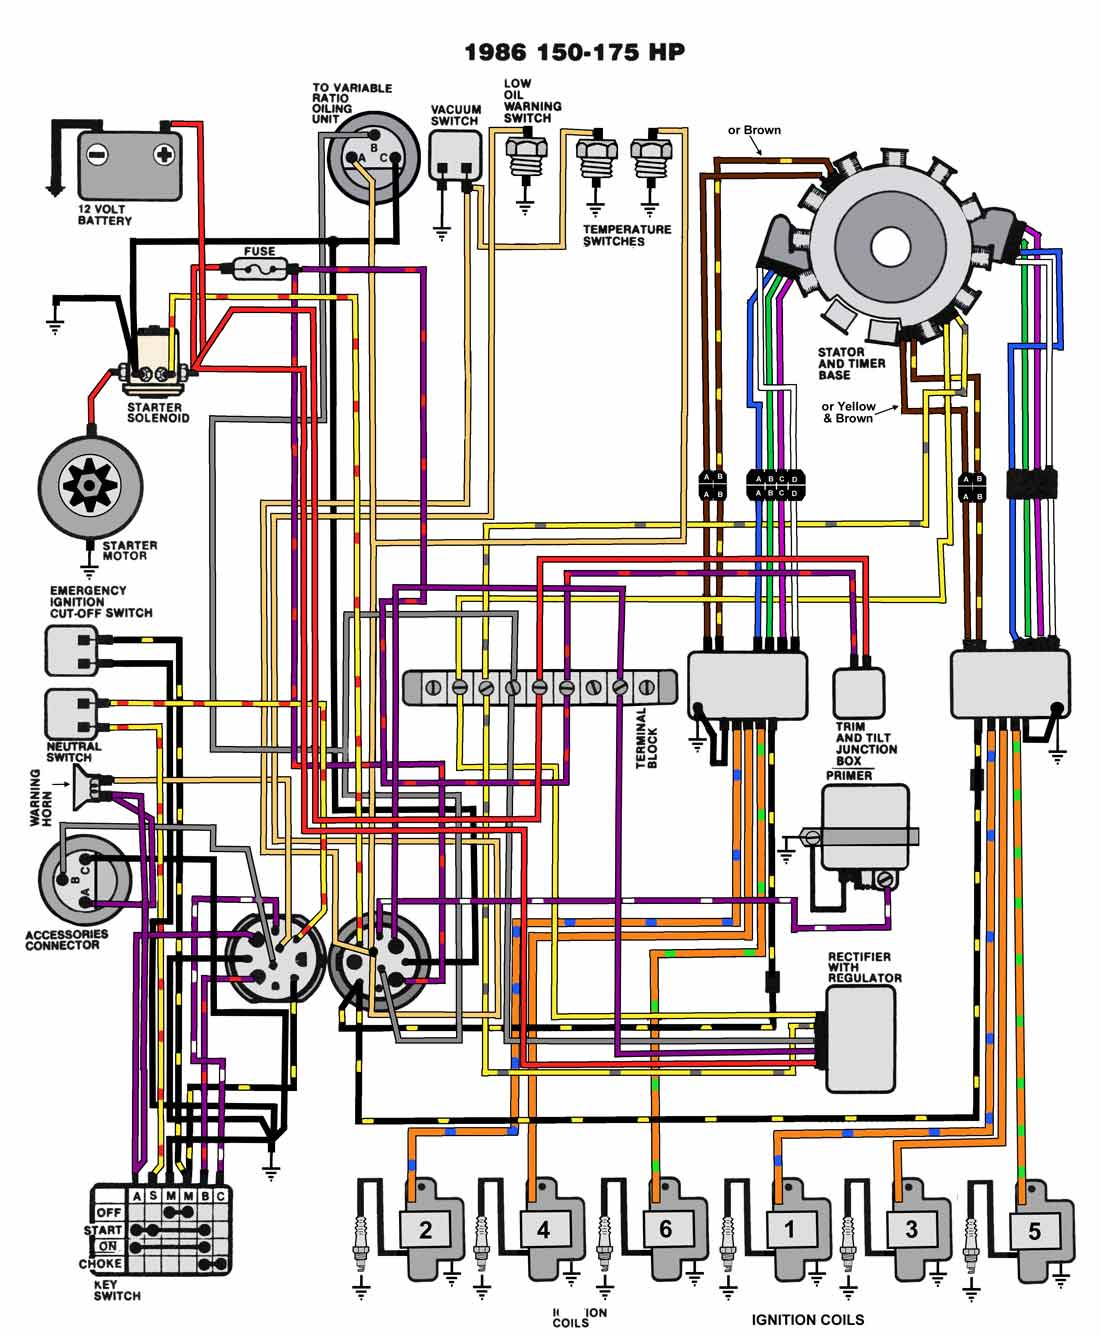 Wiring Diagram For Yamaha 115 Outboard Trusted Diagrams Schematics 25 Hp U2022 Rh Seniorlivinguniversity Co